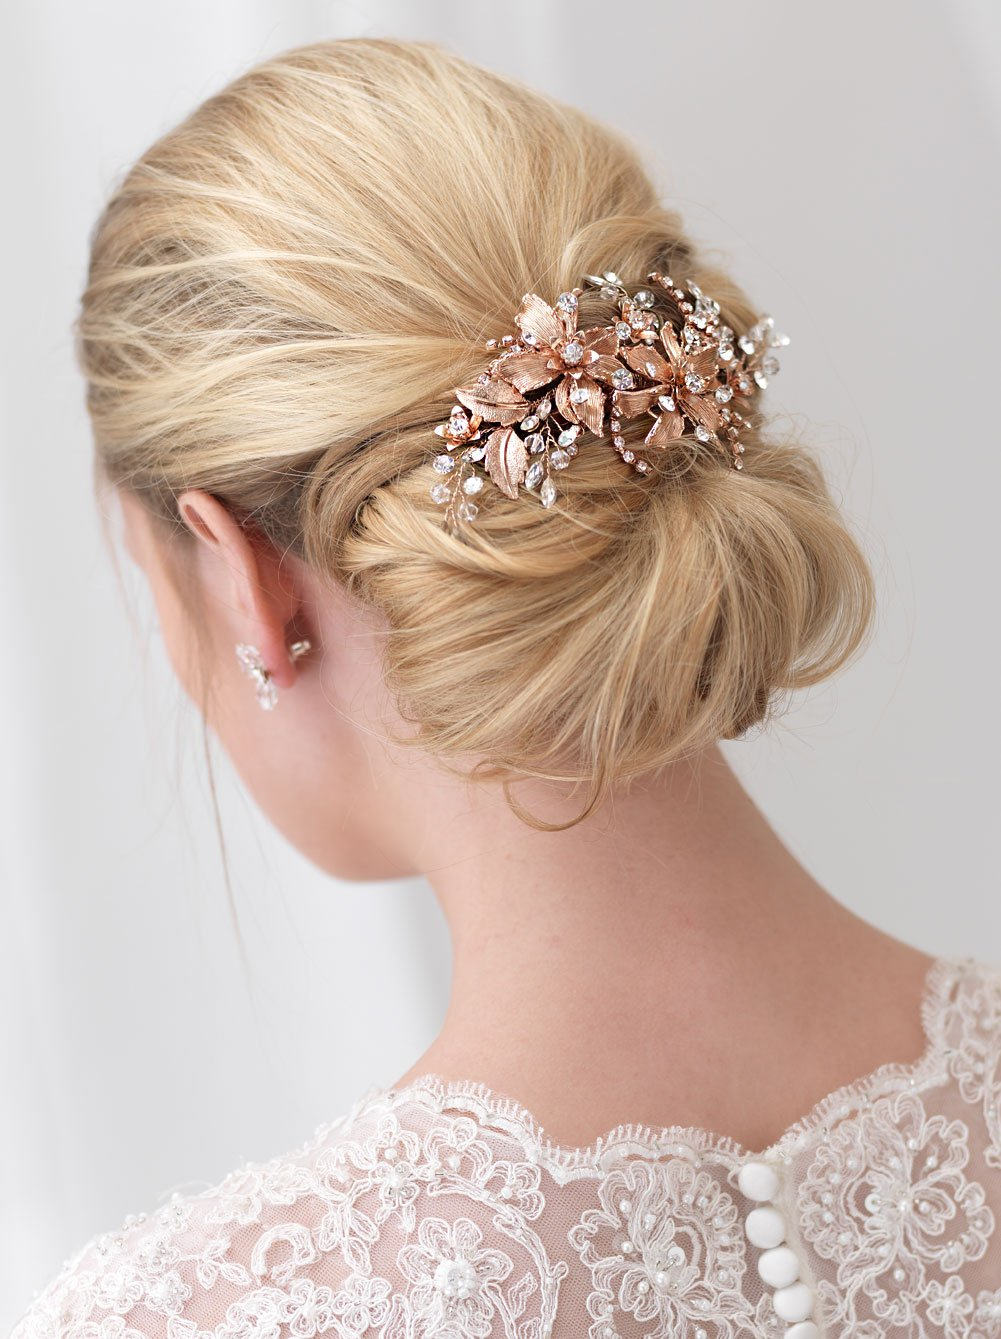 USABride Bridal Comb Rose Gold-Plated Floral Wedding Headpiece Rhinestones Crystals Hair Clip TC-2288-RG (Rose Gold)